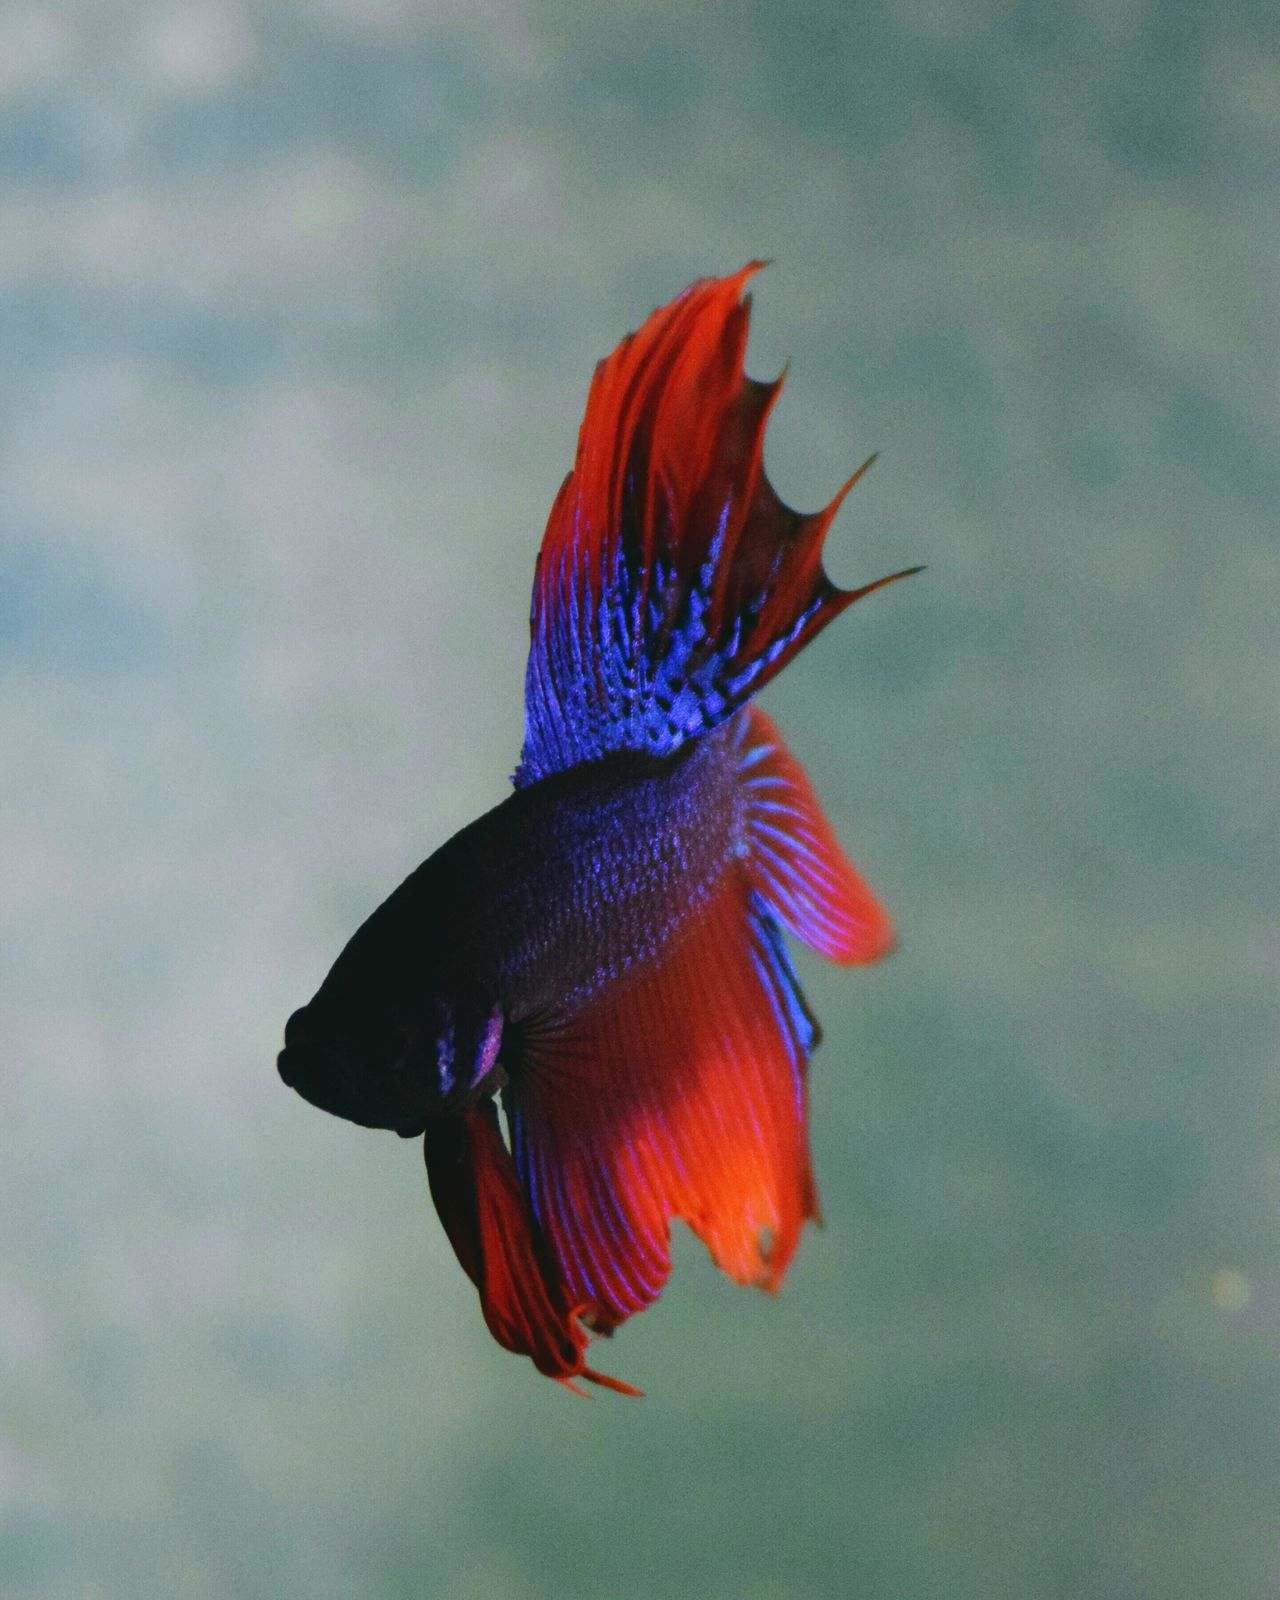 Hello World Check This Out Taking Photos My Betta EyeEm Gallery Eyeem Photography Bettafishcommunity Animal Photography Fish Photography Bettasiamesefish Scales And Fins Fighter Fish Aquarium Eyeem4photography Nikon D5300 Photographer Betta Lovers Moon Tail Bettas Blue Fish Fishporn Blue And Red Colour